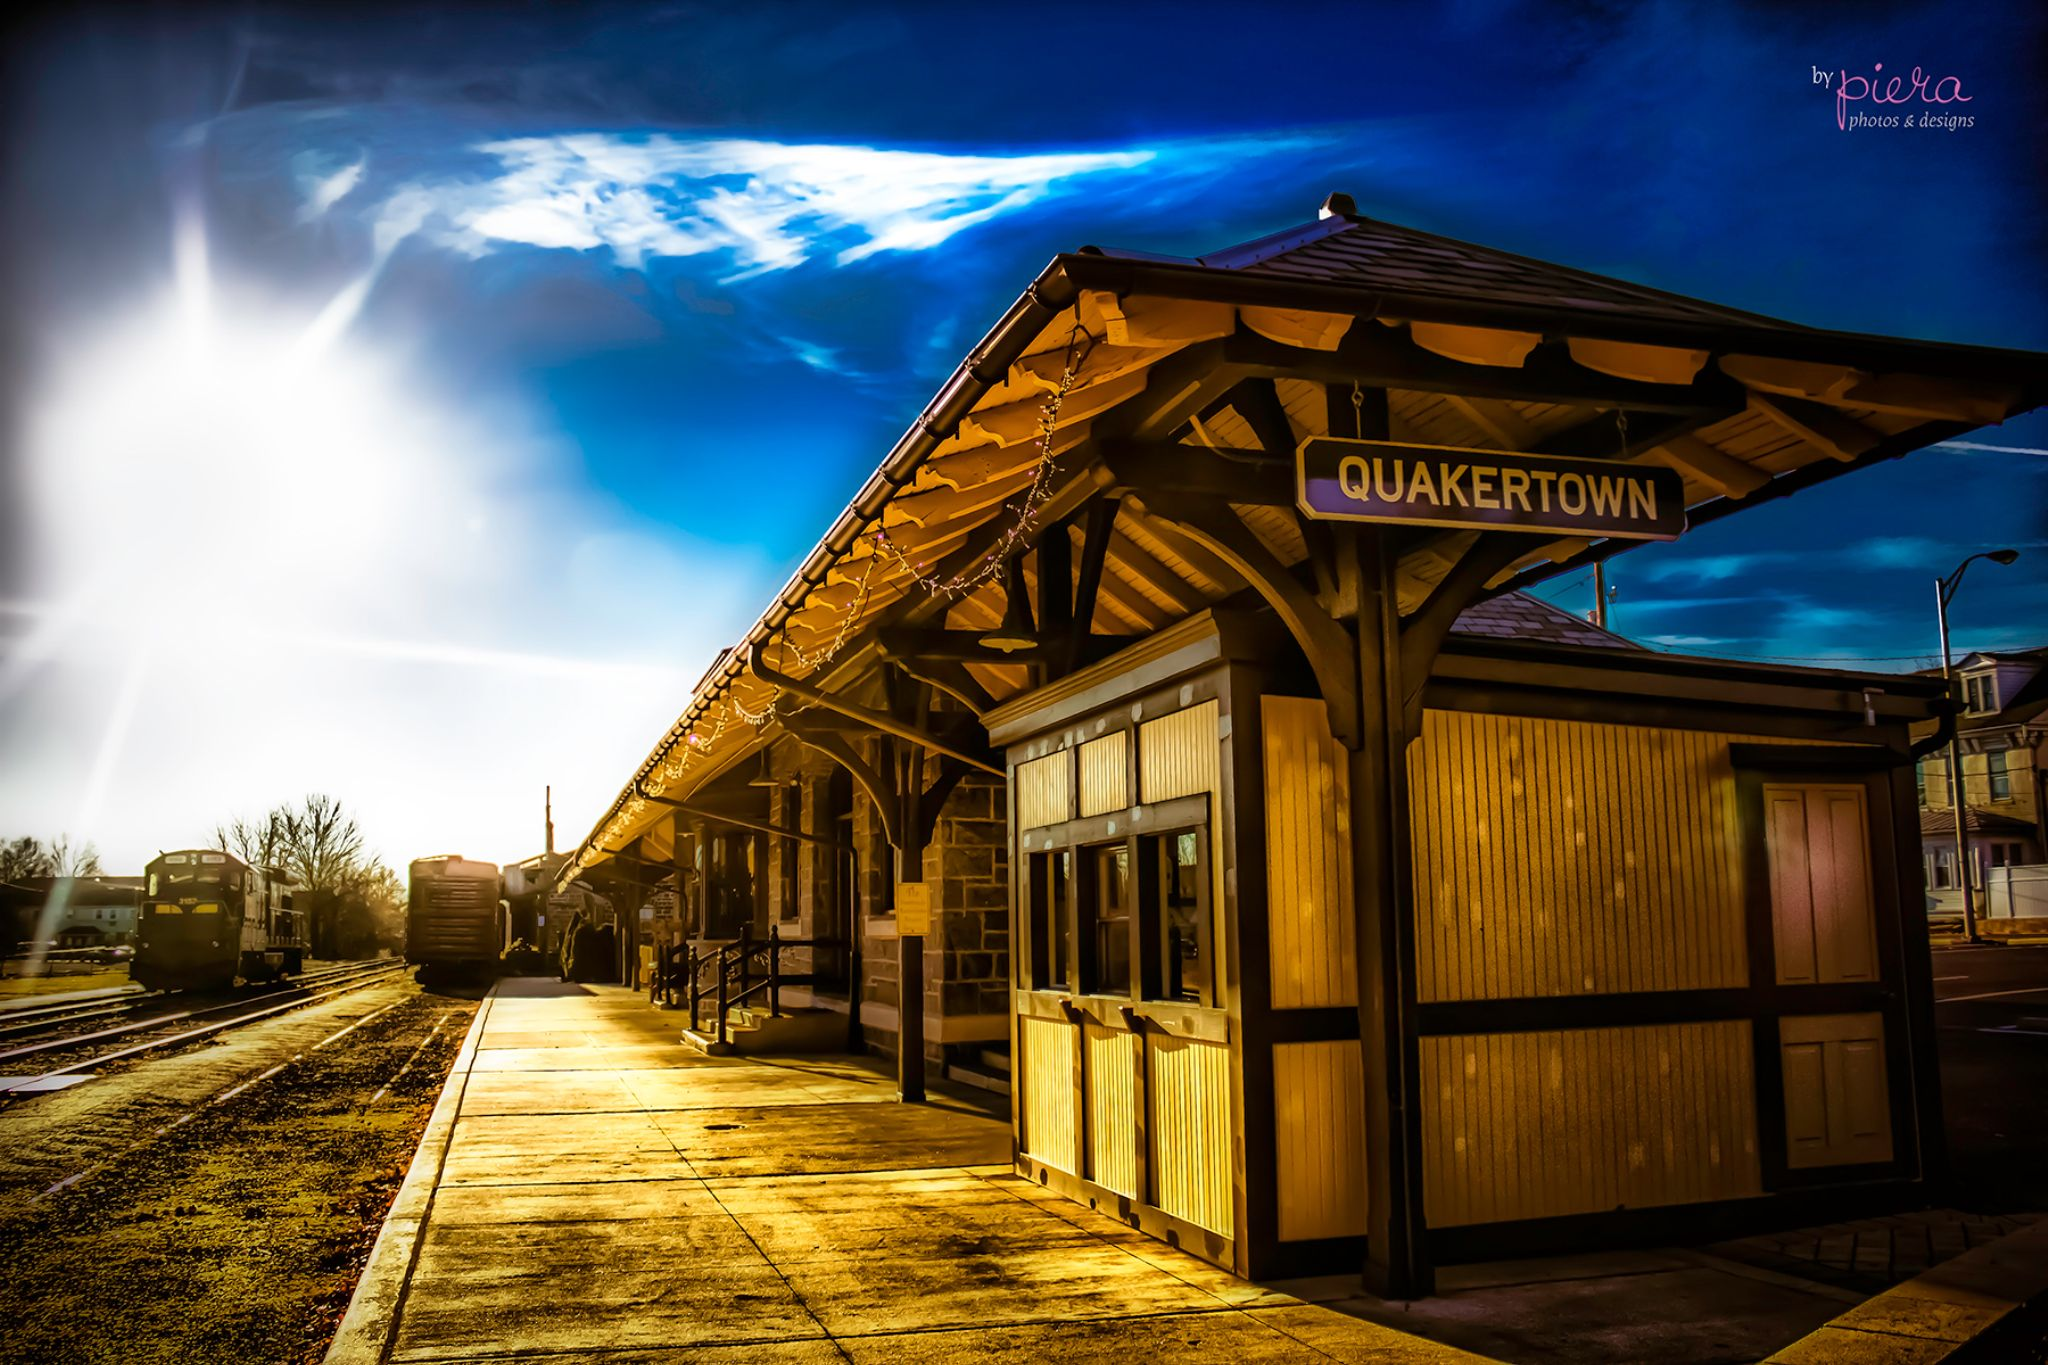 Quakertown Historical Railroad Station by Photos by Piera